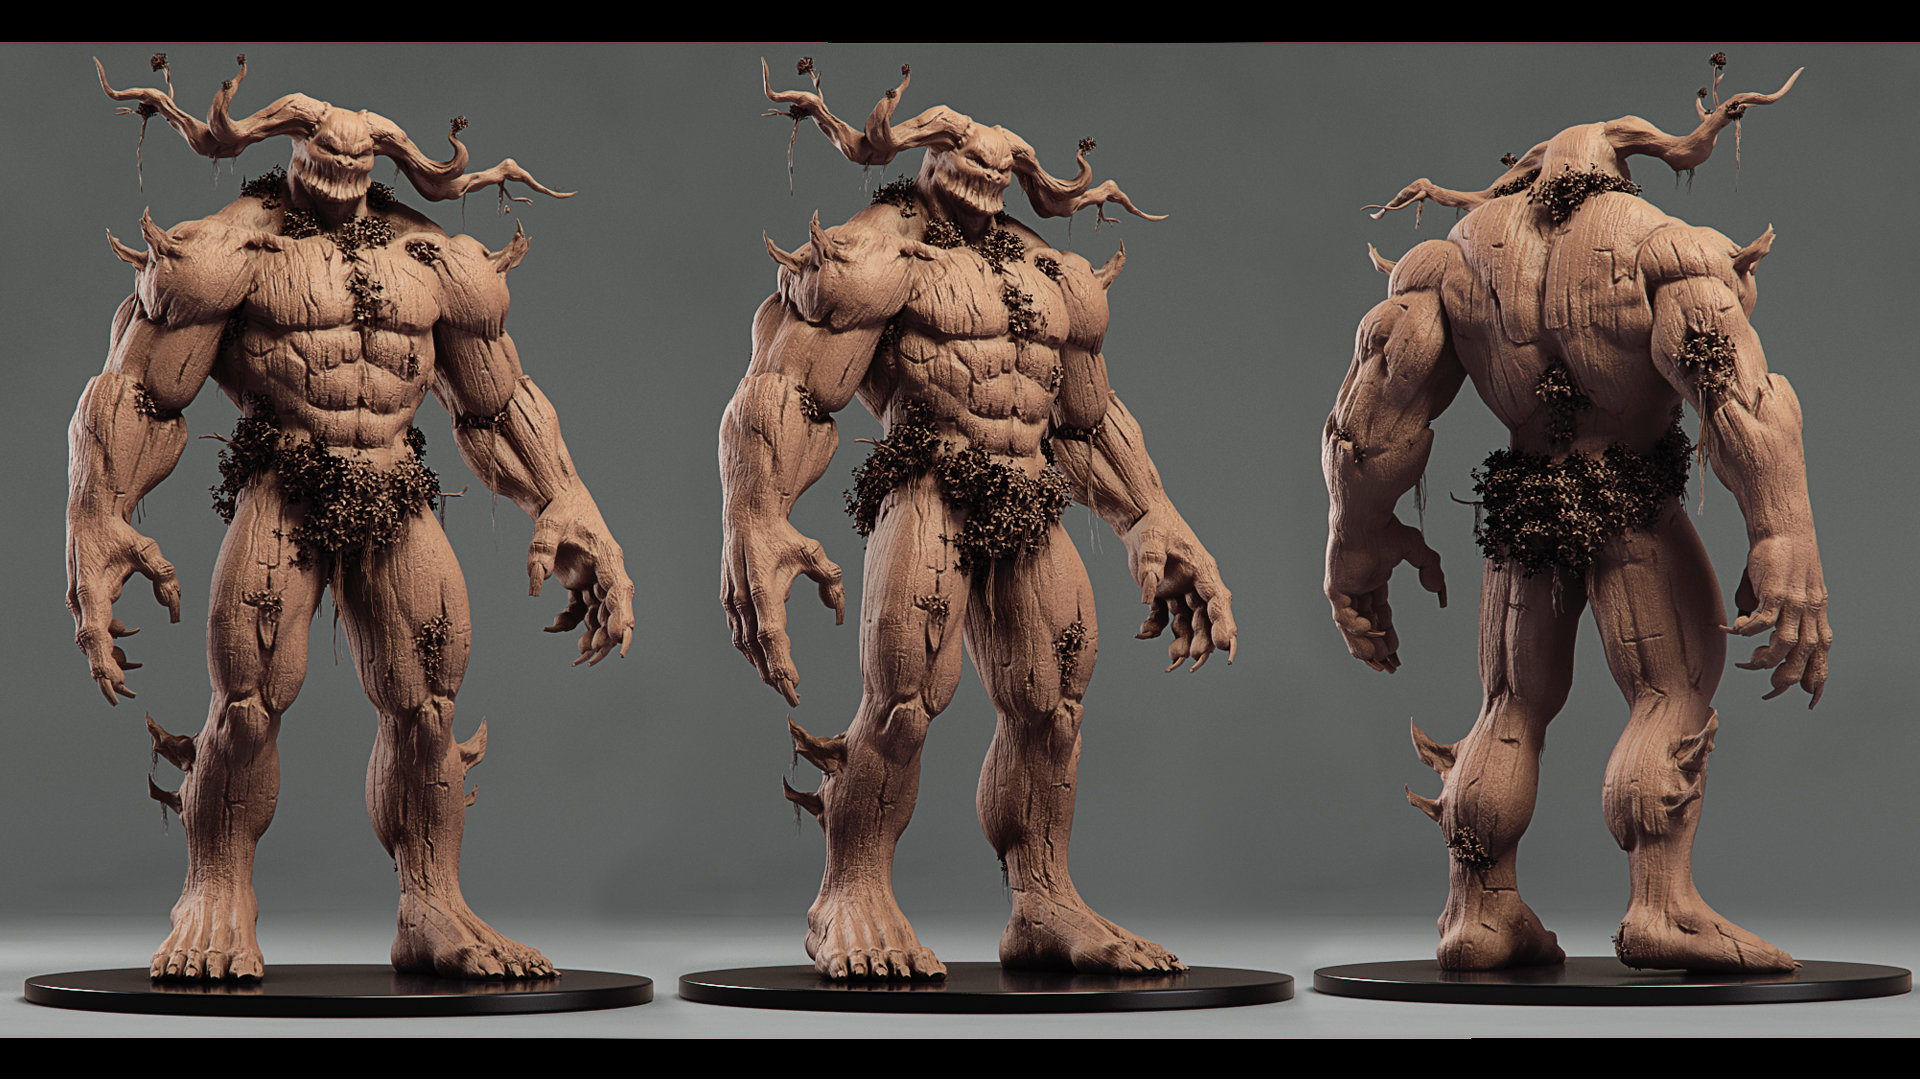 Creature render turntable